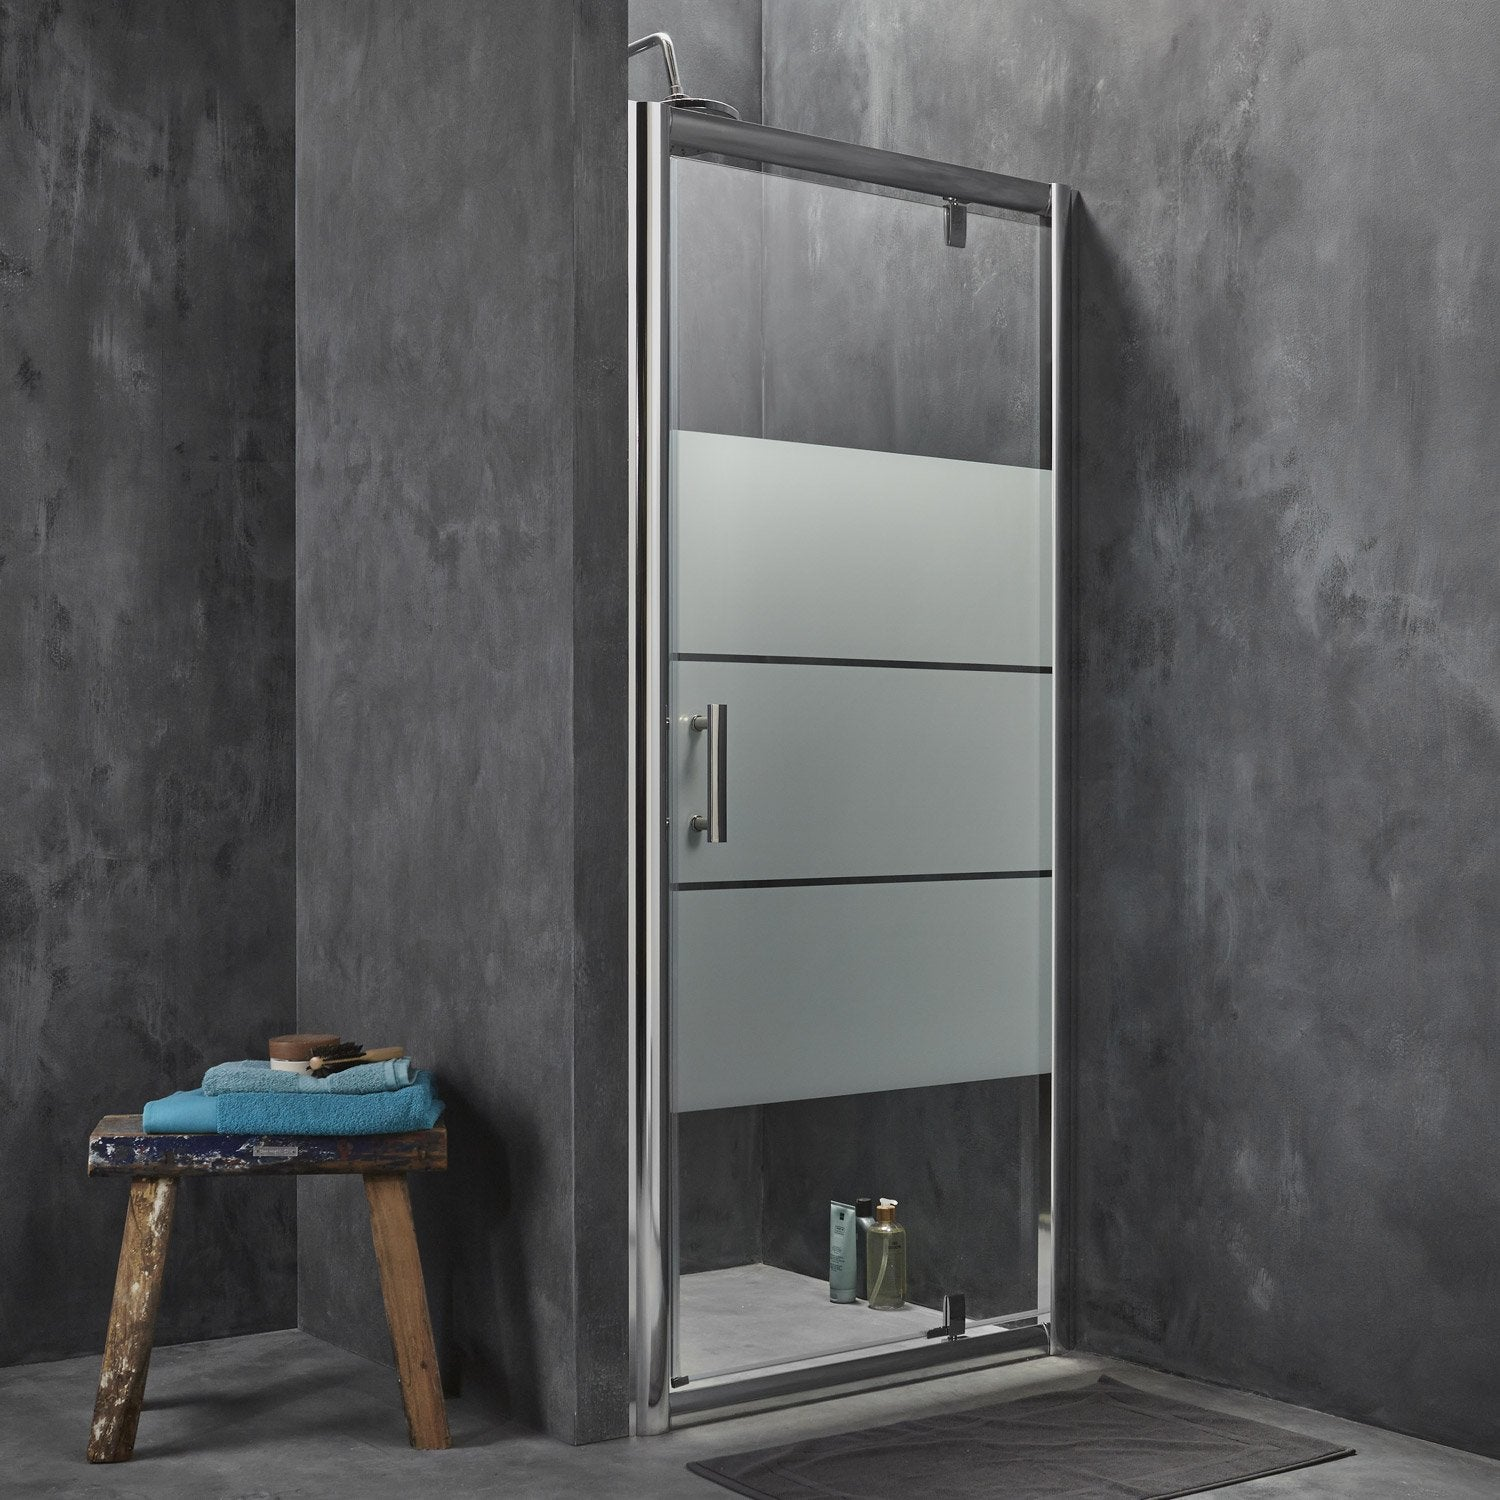 porte de douche pivotante 96 5 100 cm profil chrom. Black Bedroom Furniture Sets. Home Design Ideas